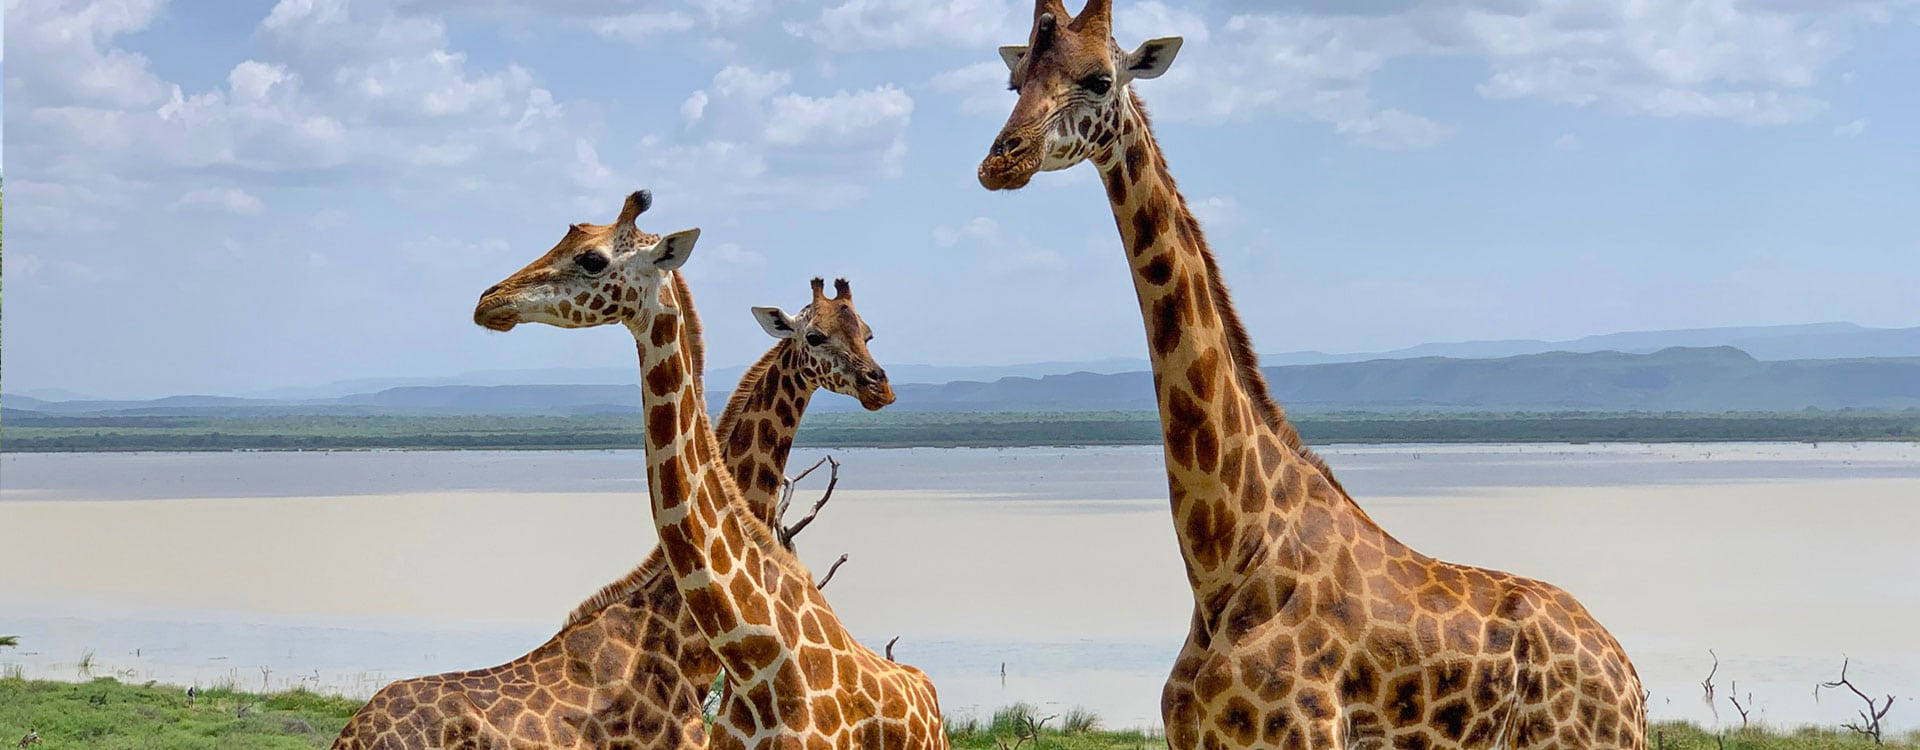 donate-save-giraffes-now